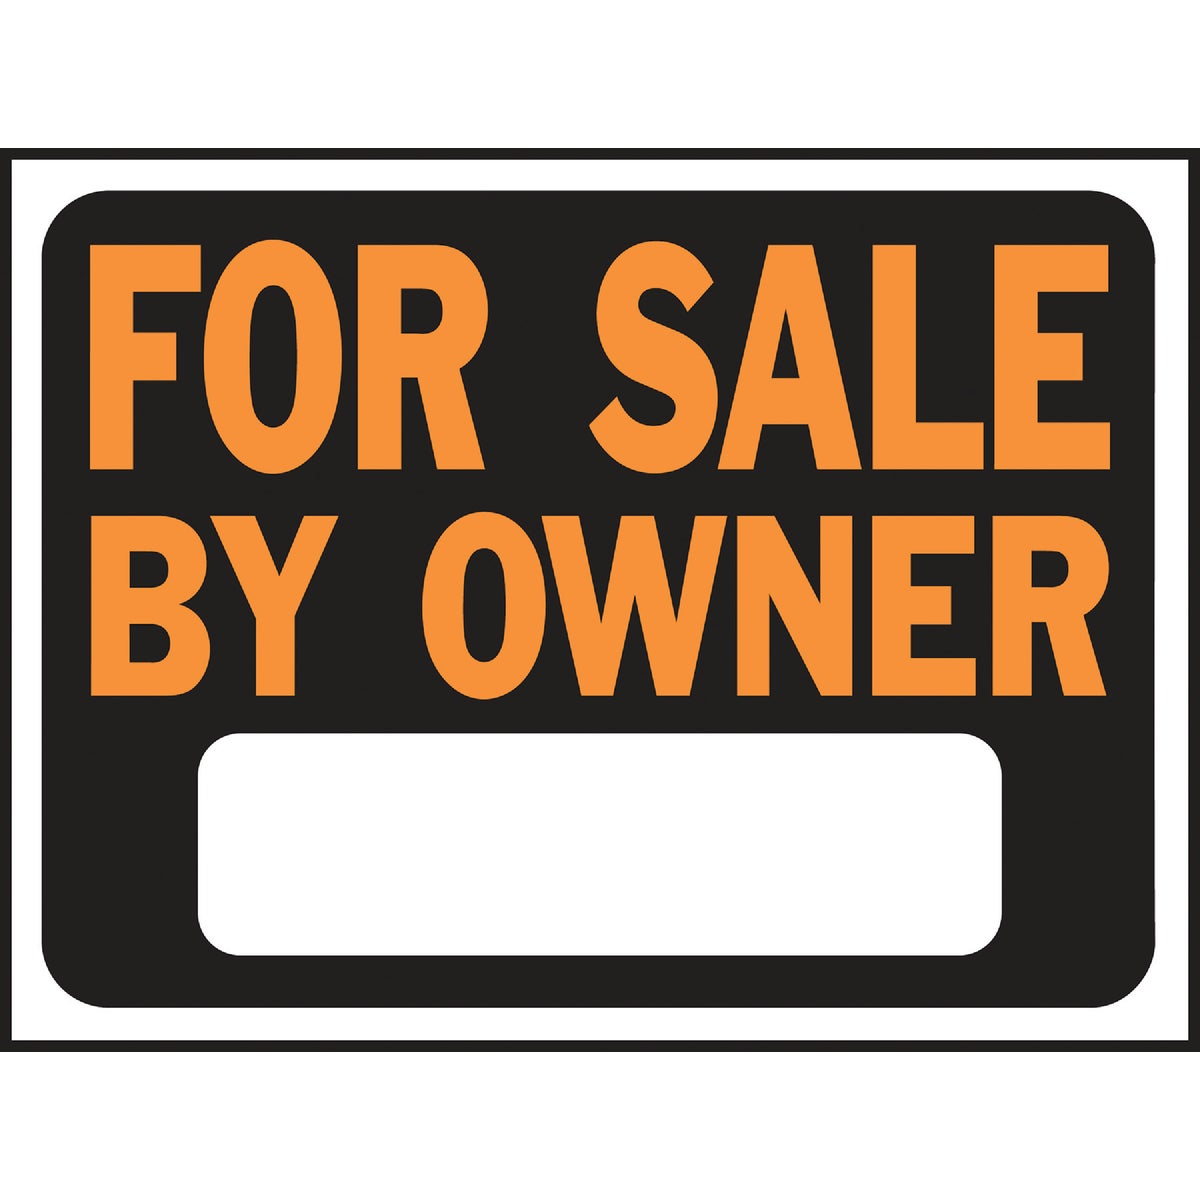 9X12 FOR SALE/OWNER SIGN - 3007 by Hy Ko Prods Co